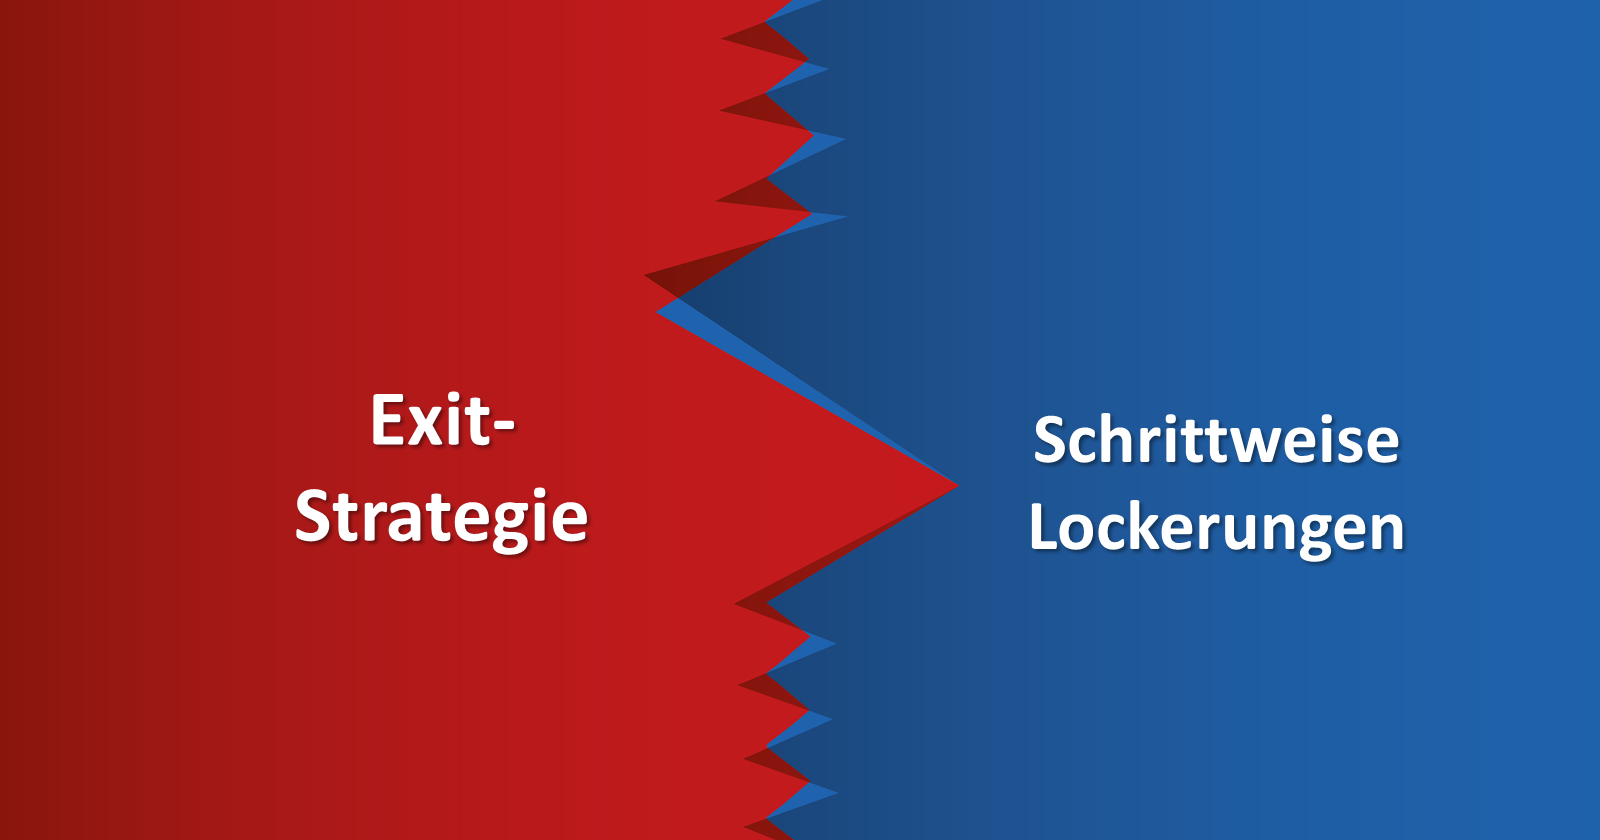 Das Framing der Exit-Strategie